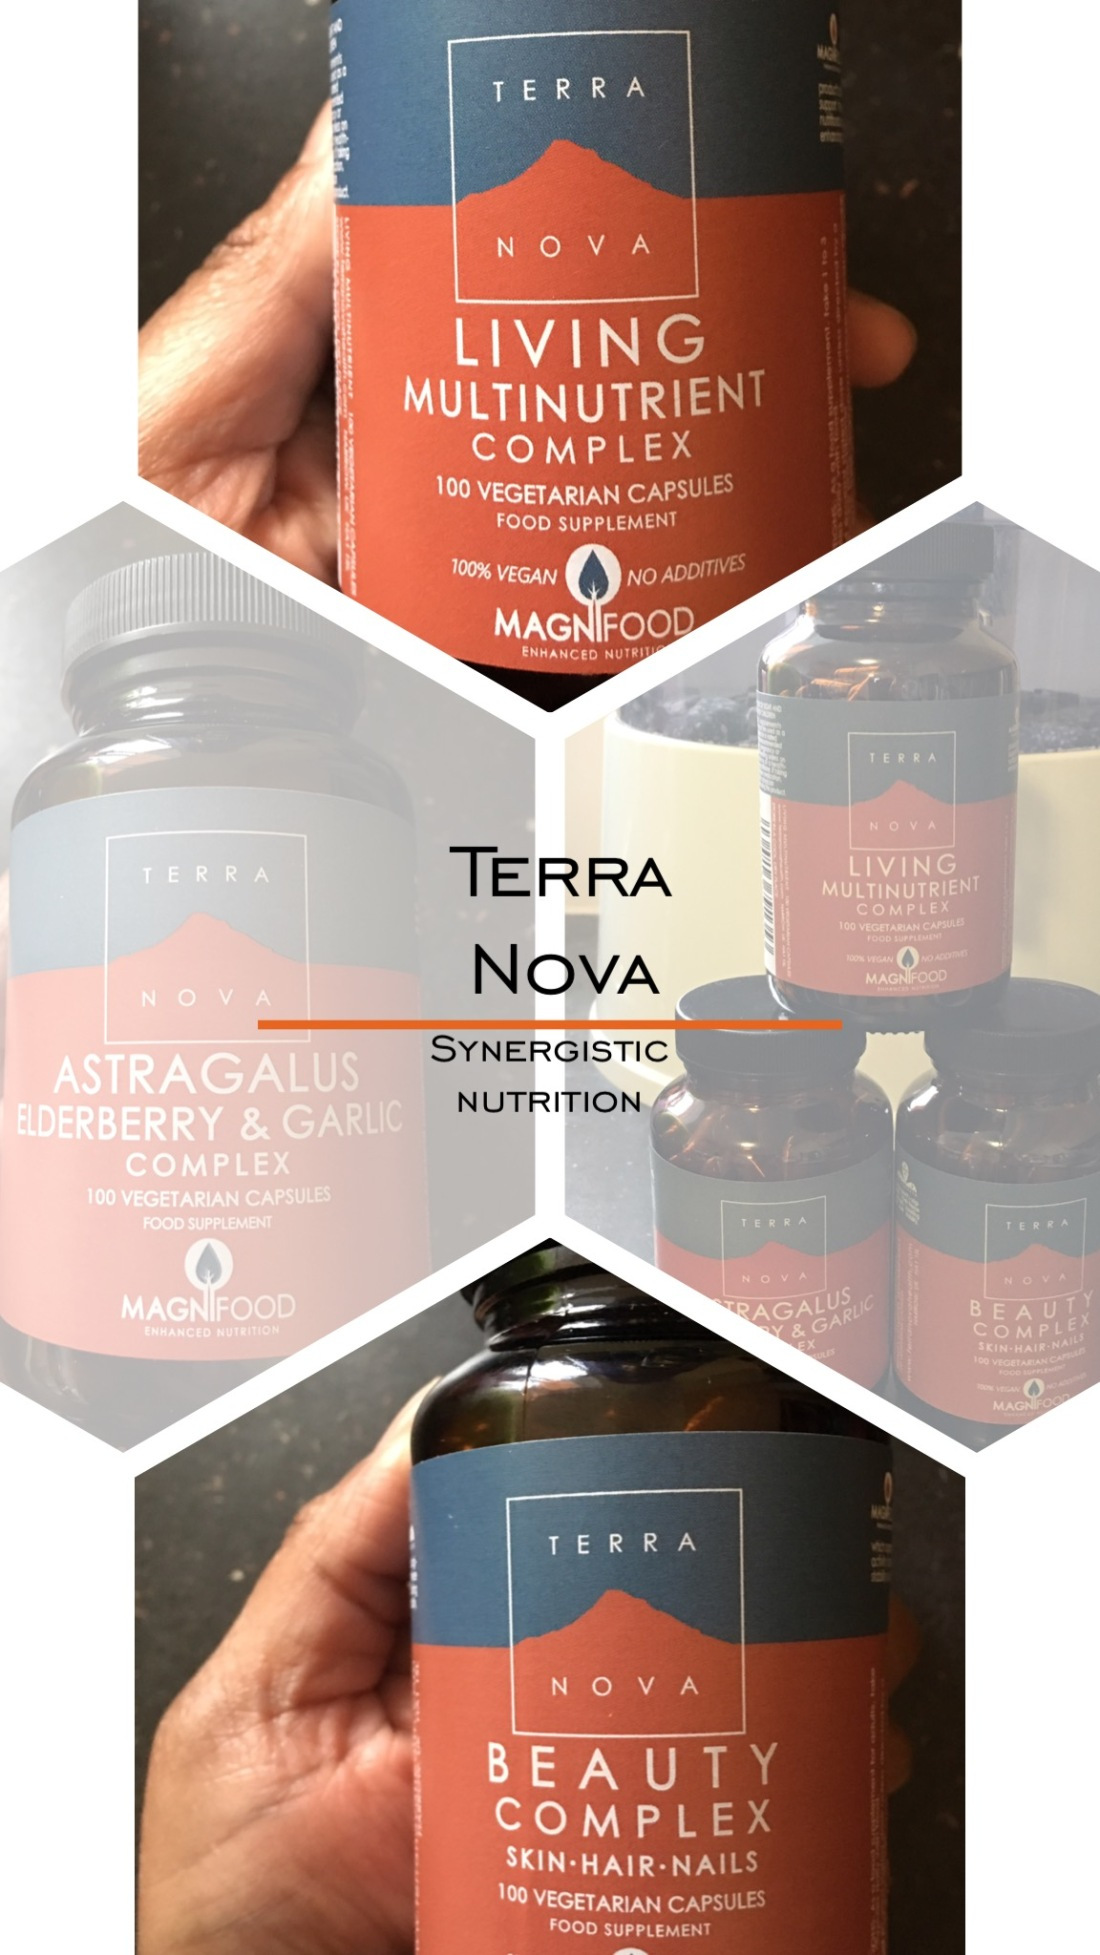 Review: TerraNova Synergistic Nutrition – 2MumsViews